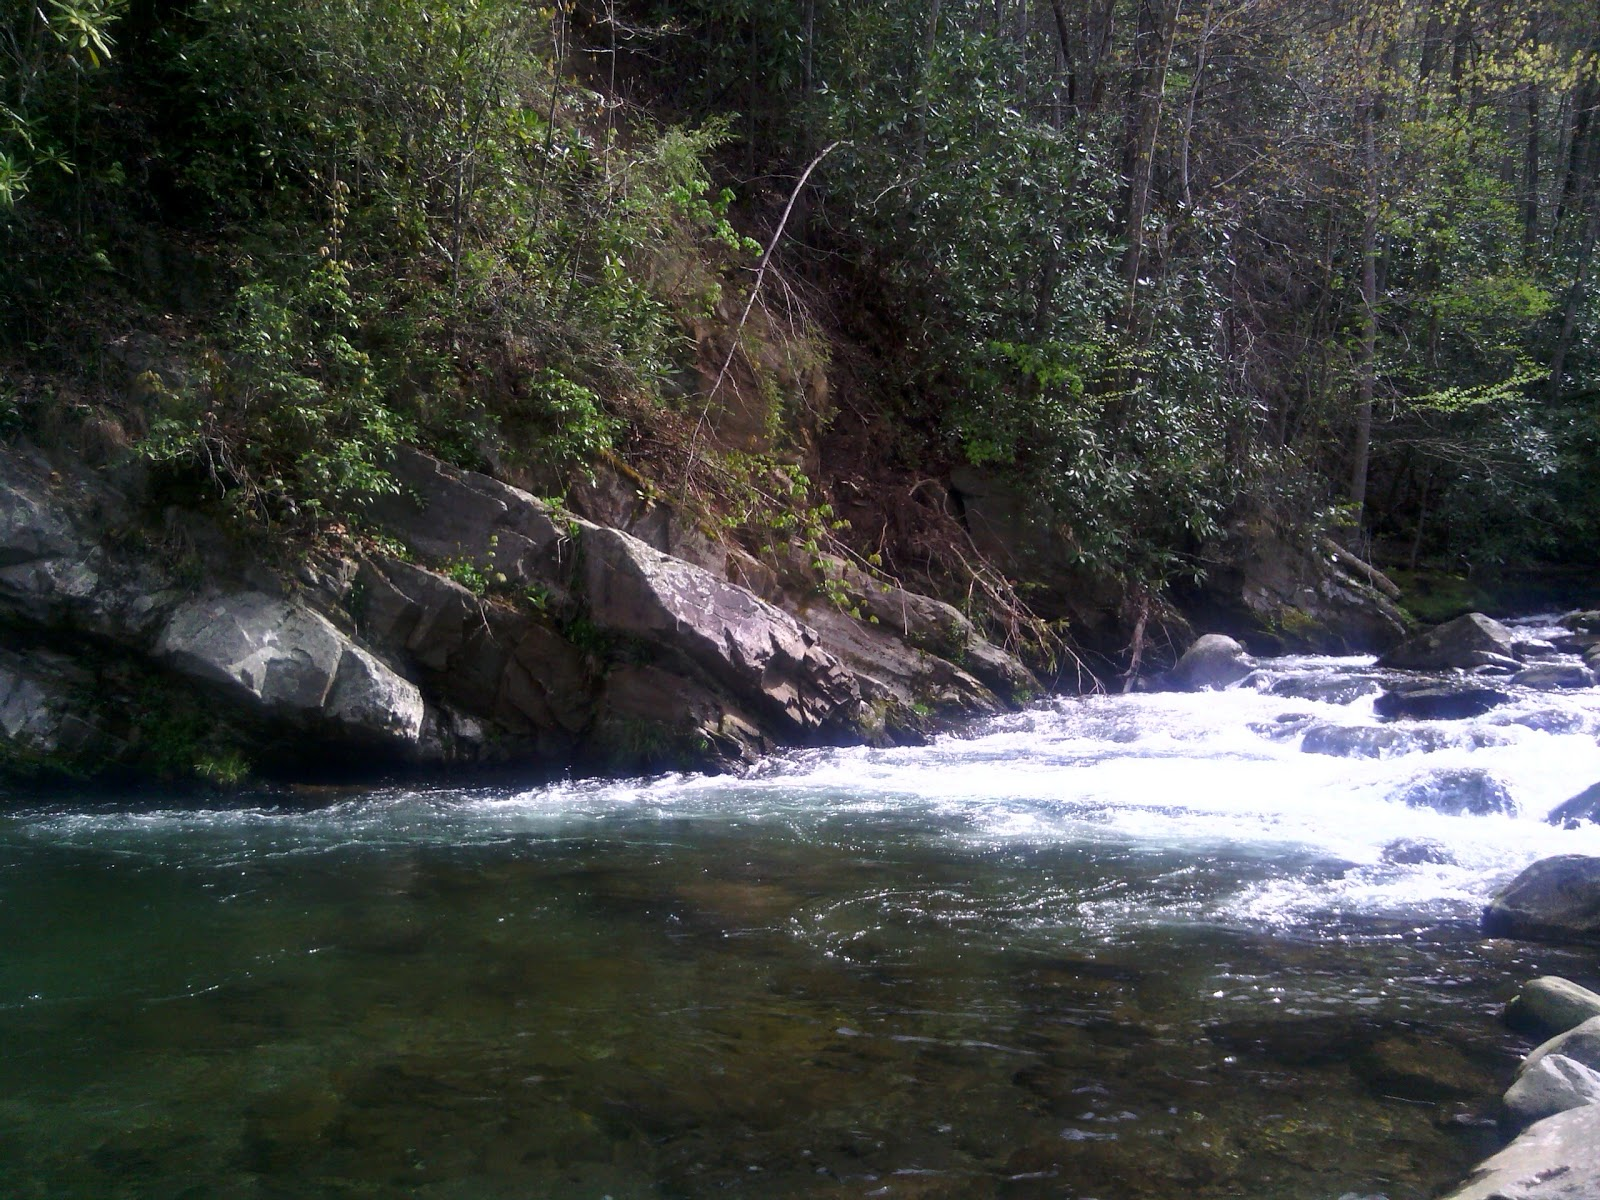 Tennessee fly fishing smoky mountain spring saftey tips 2013 for Fly fishing smoky mountains